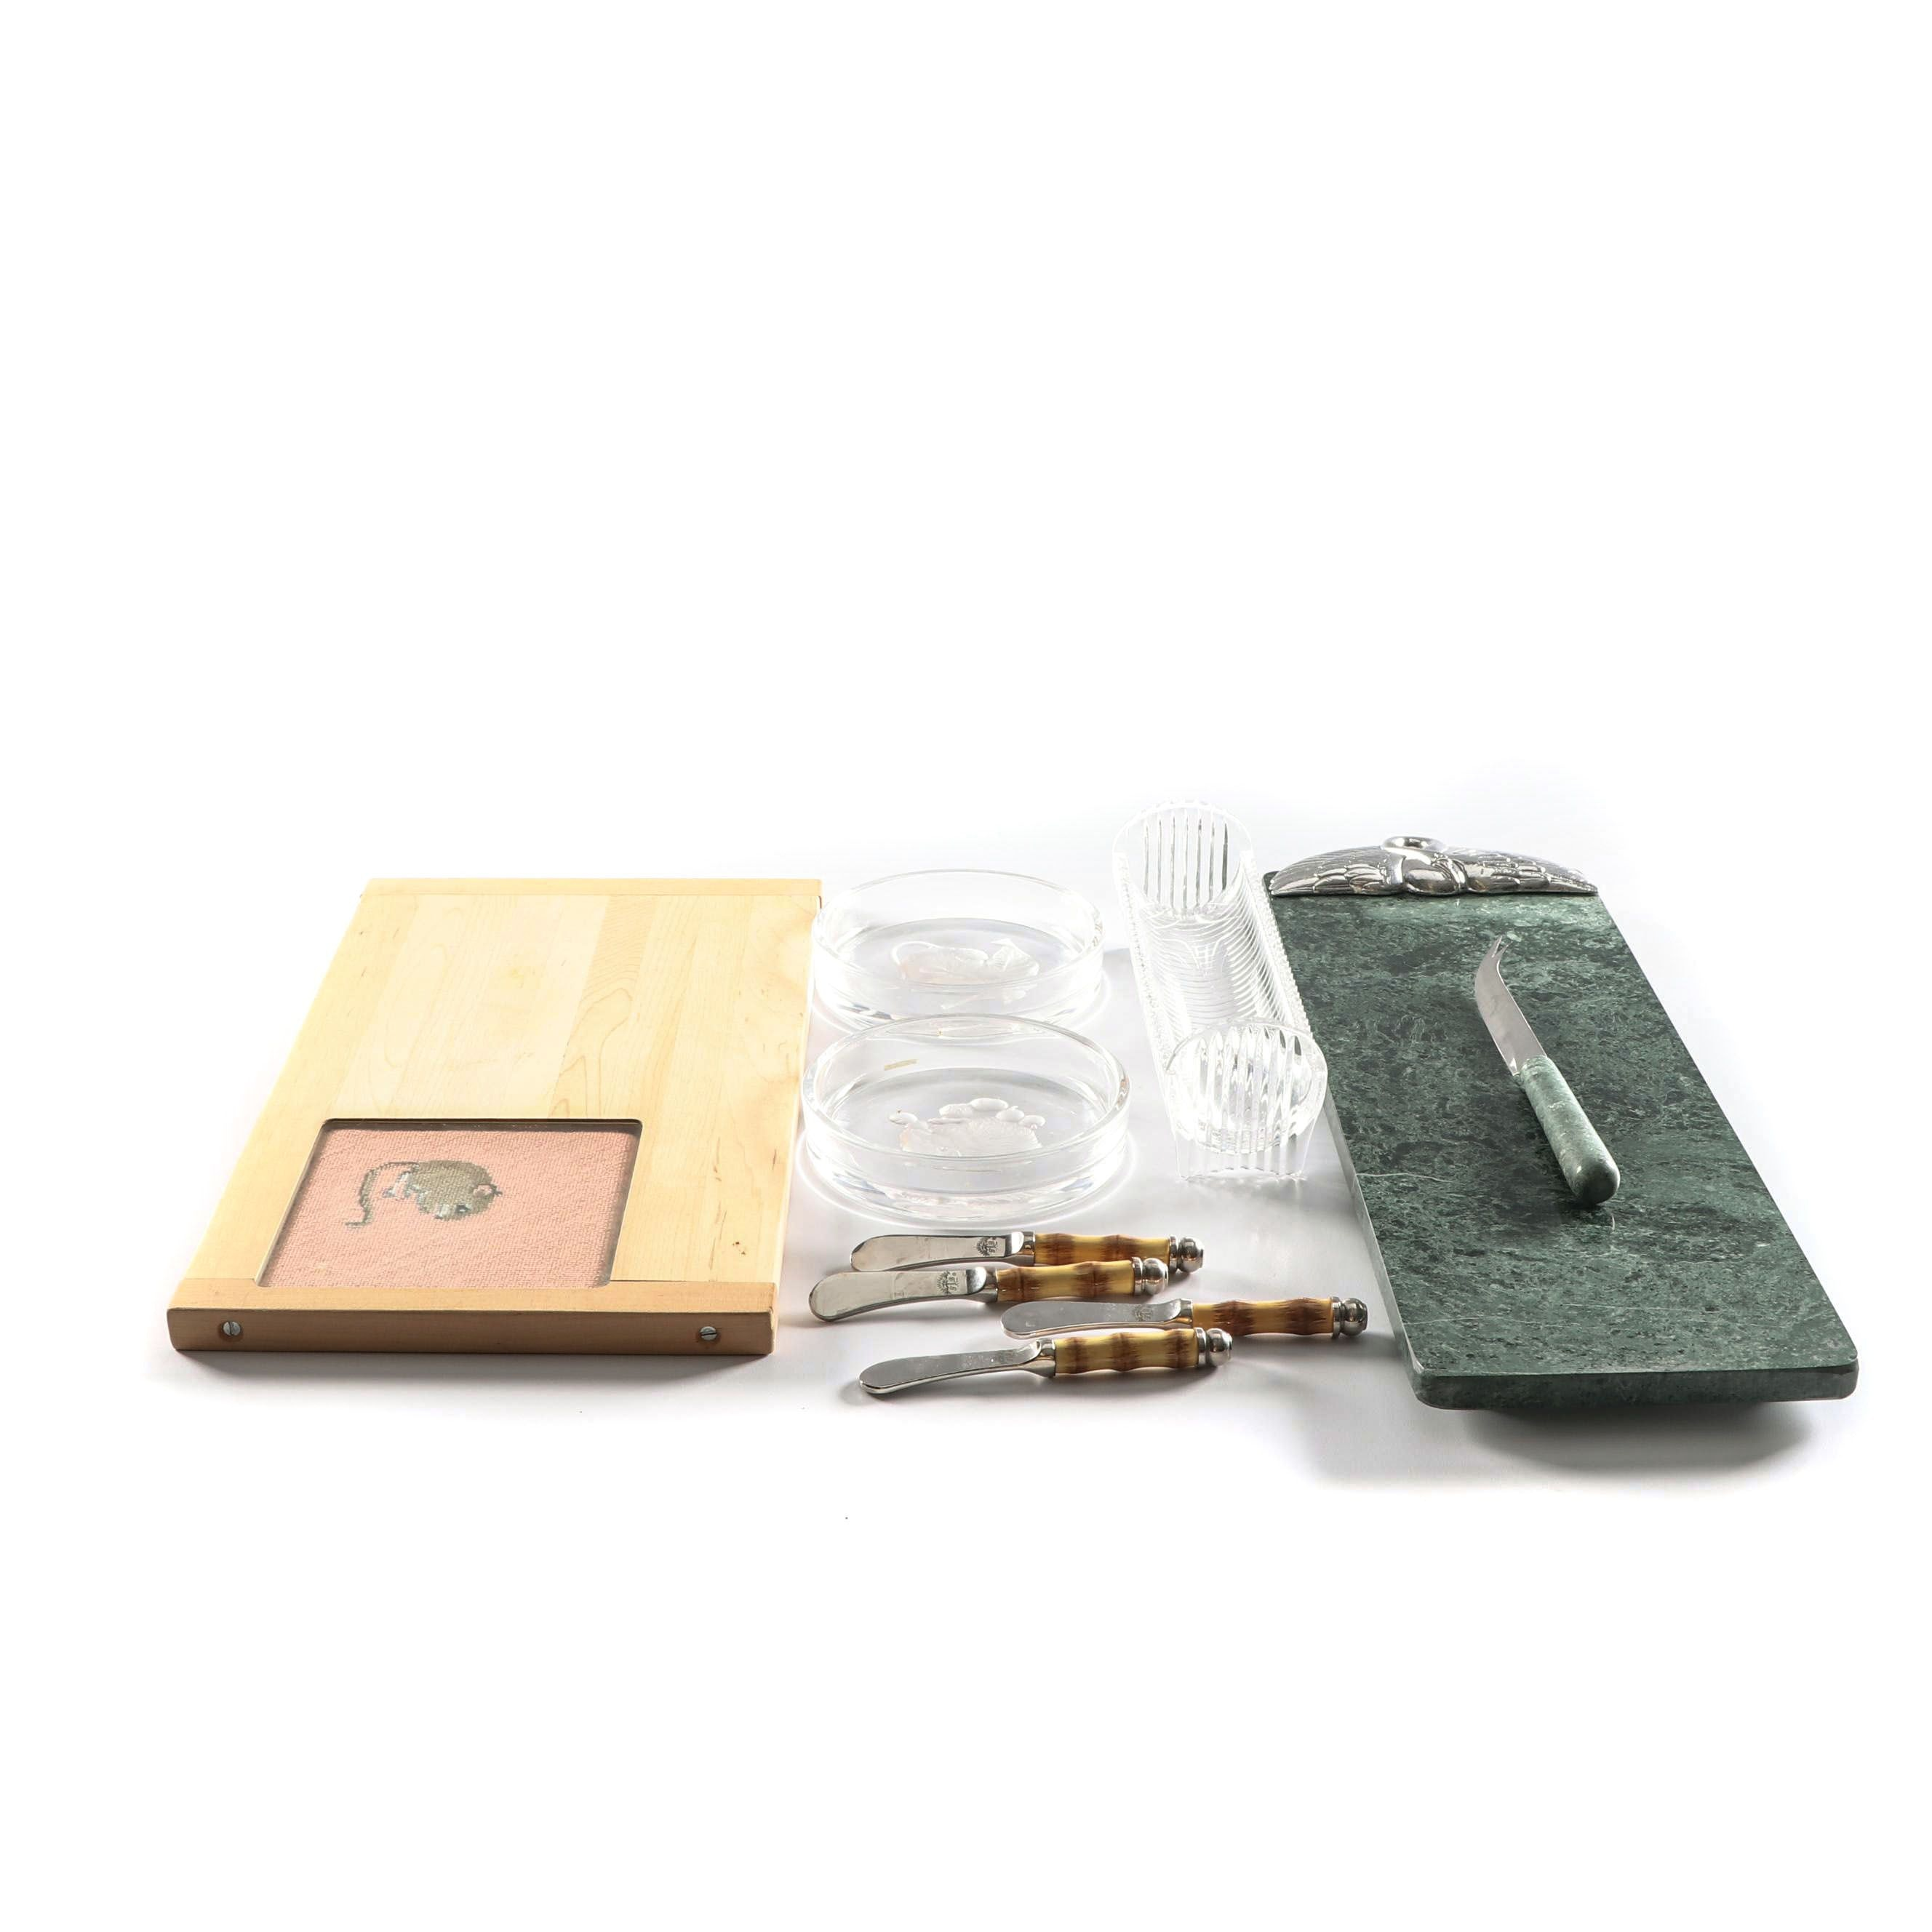 Charcuterie Boards and Accessories